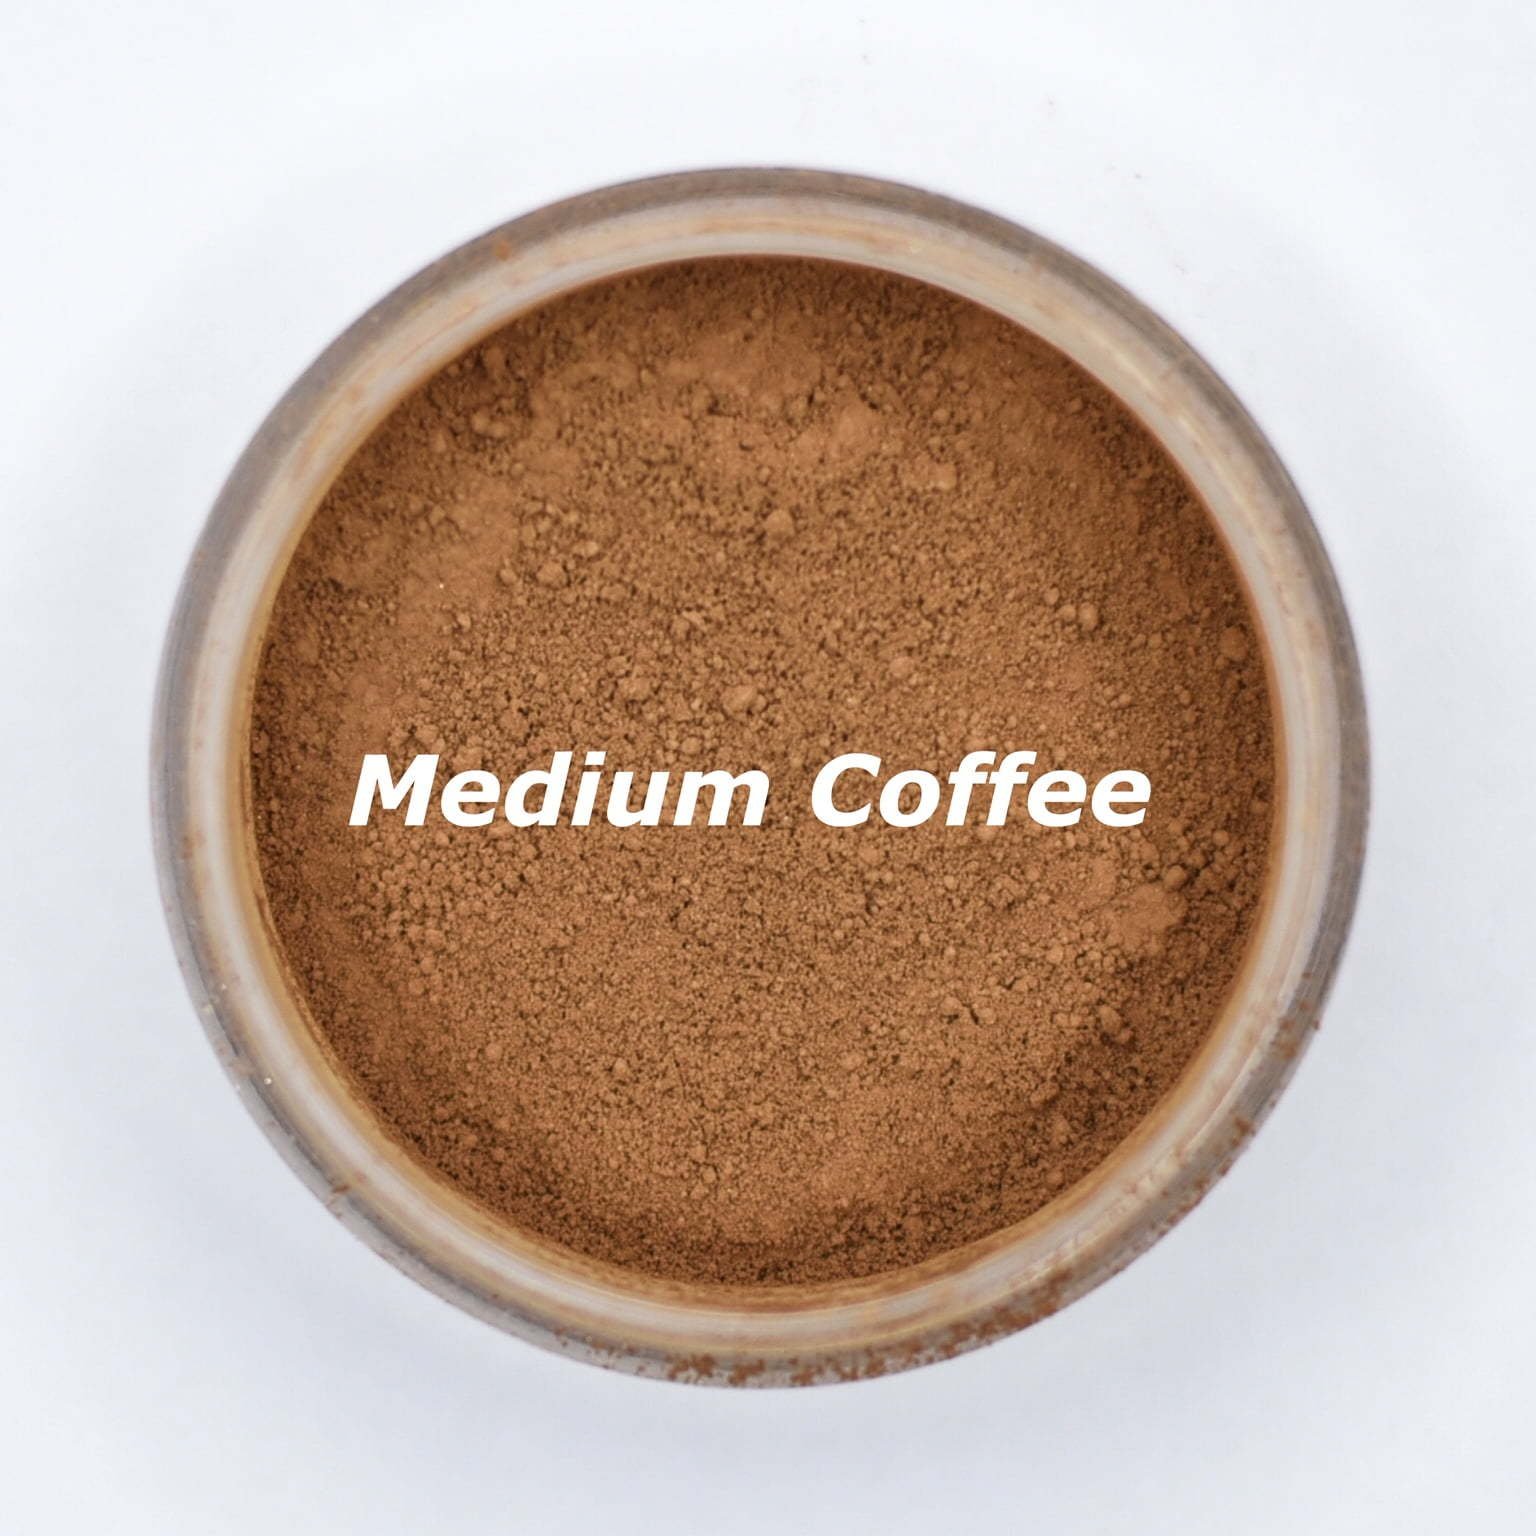 medium coffee foundation shade